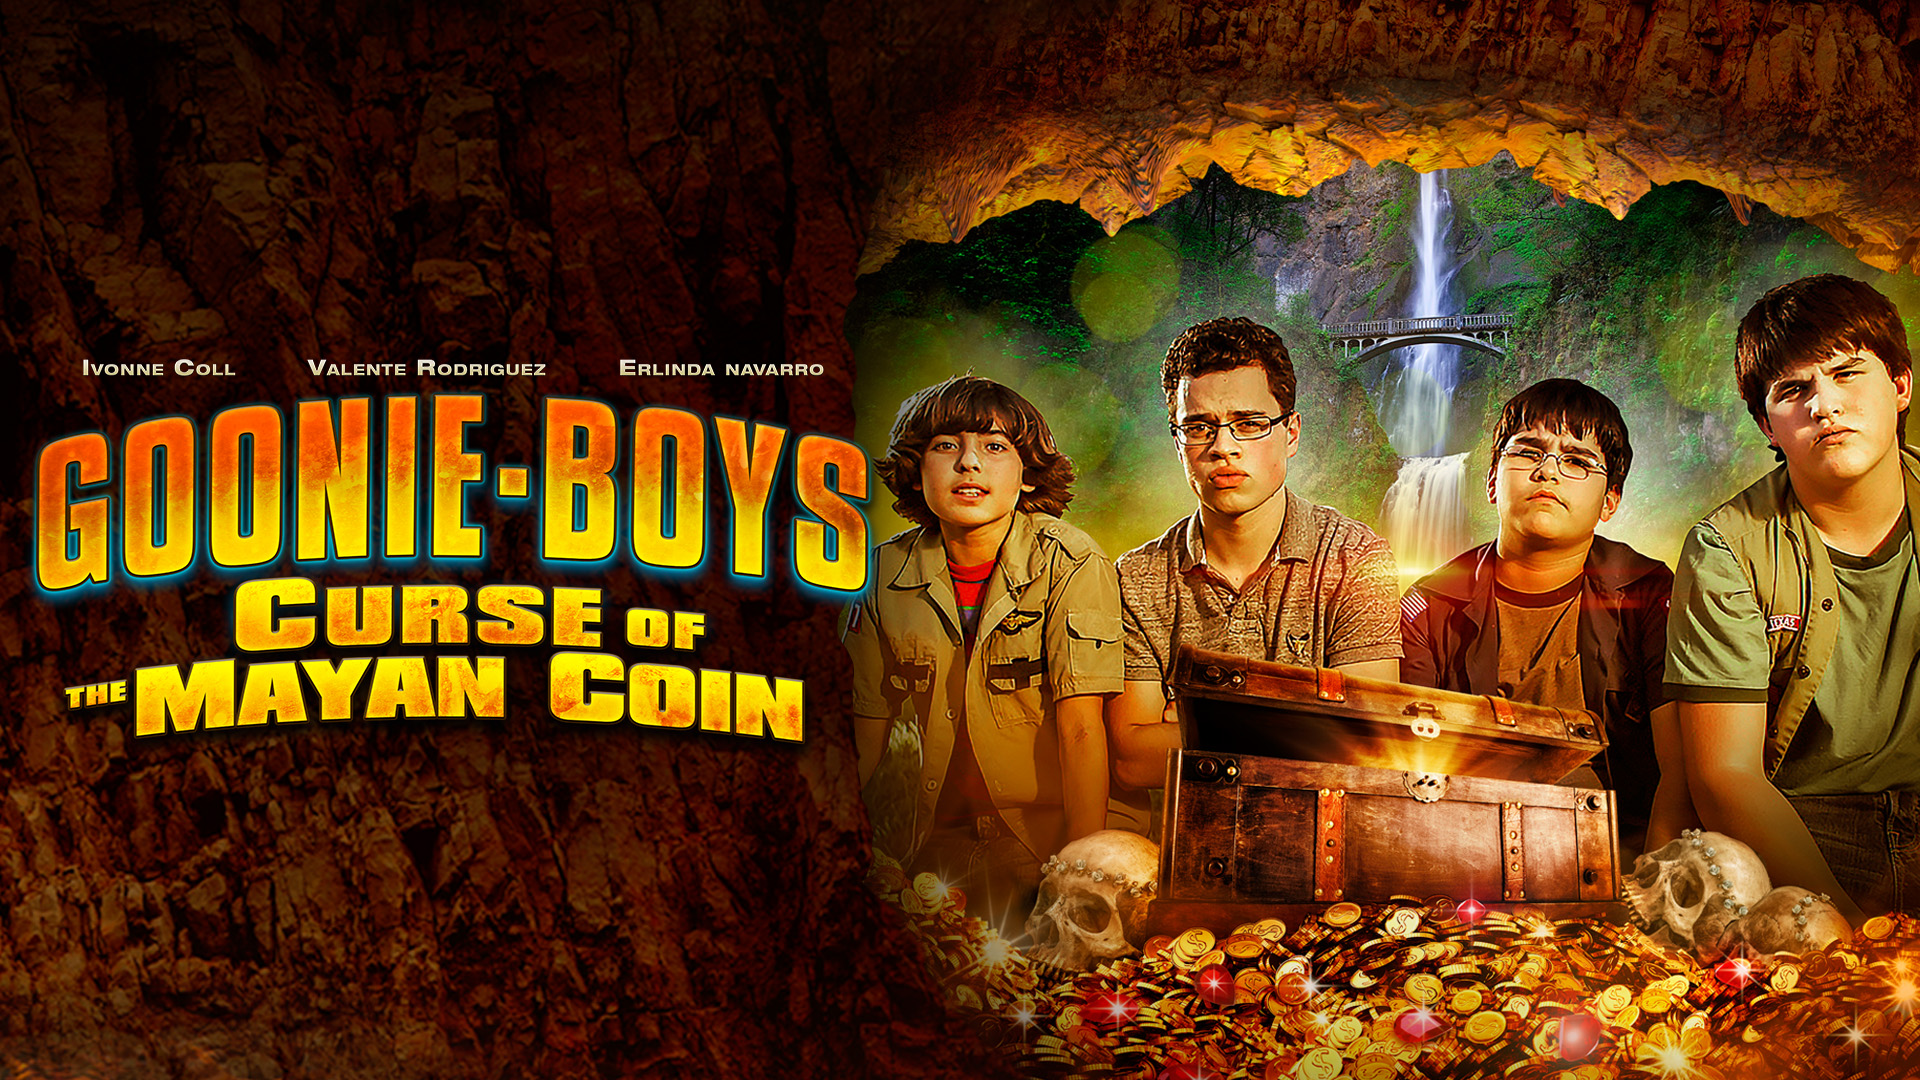 Goonie-Boys: Curse of the Mayan Coin on Amazon Prime Instant Video UK